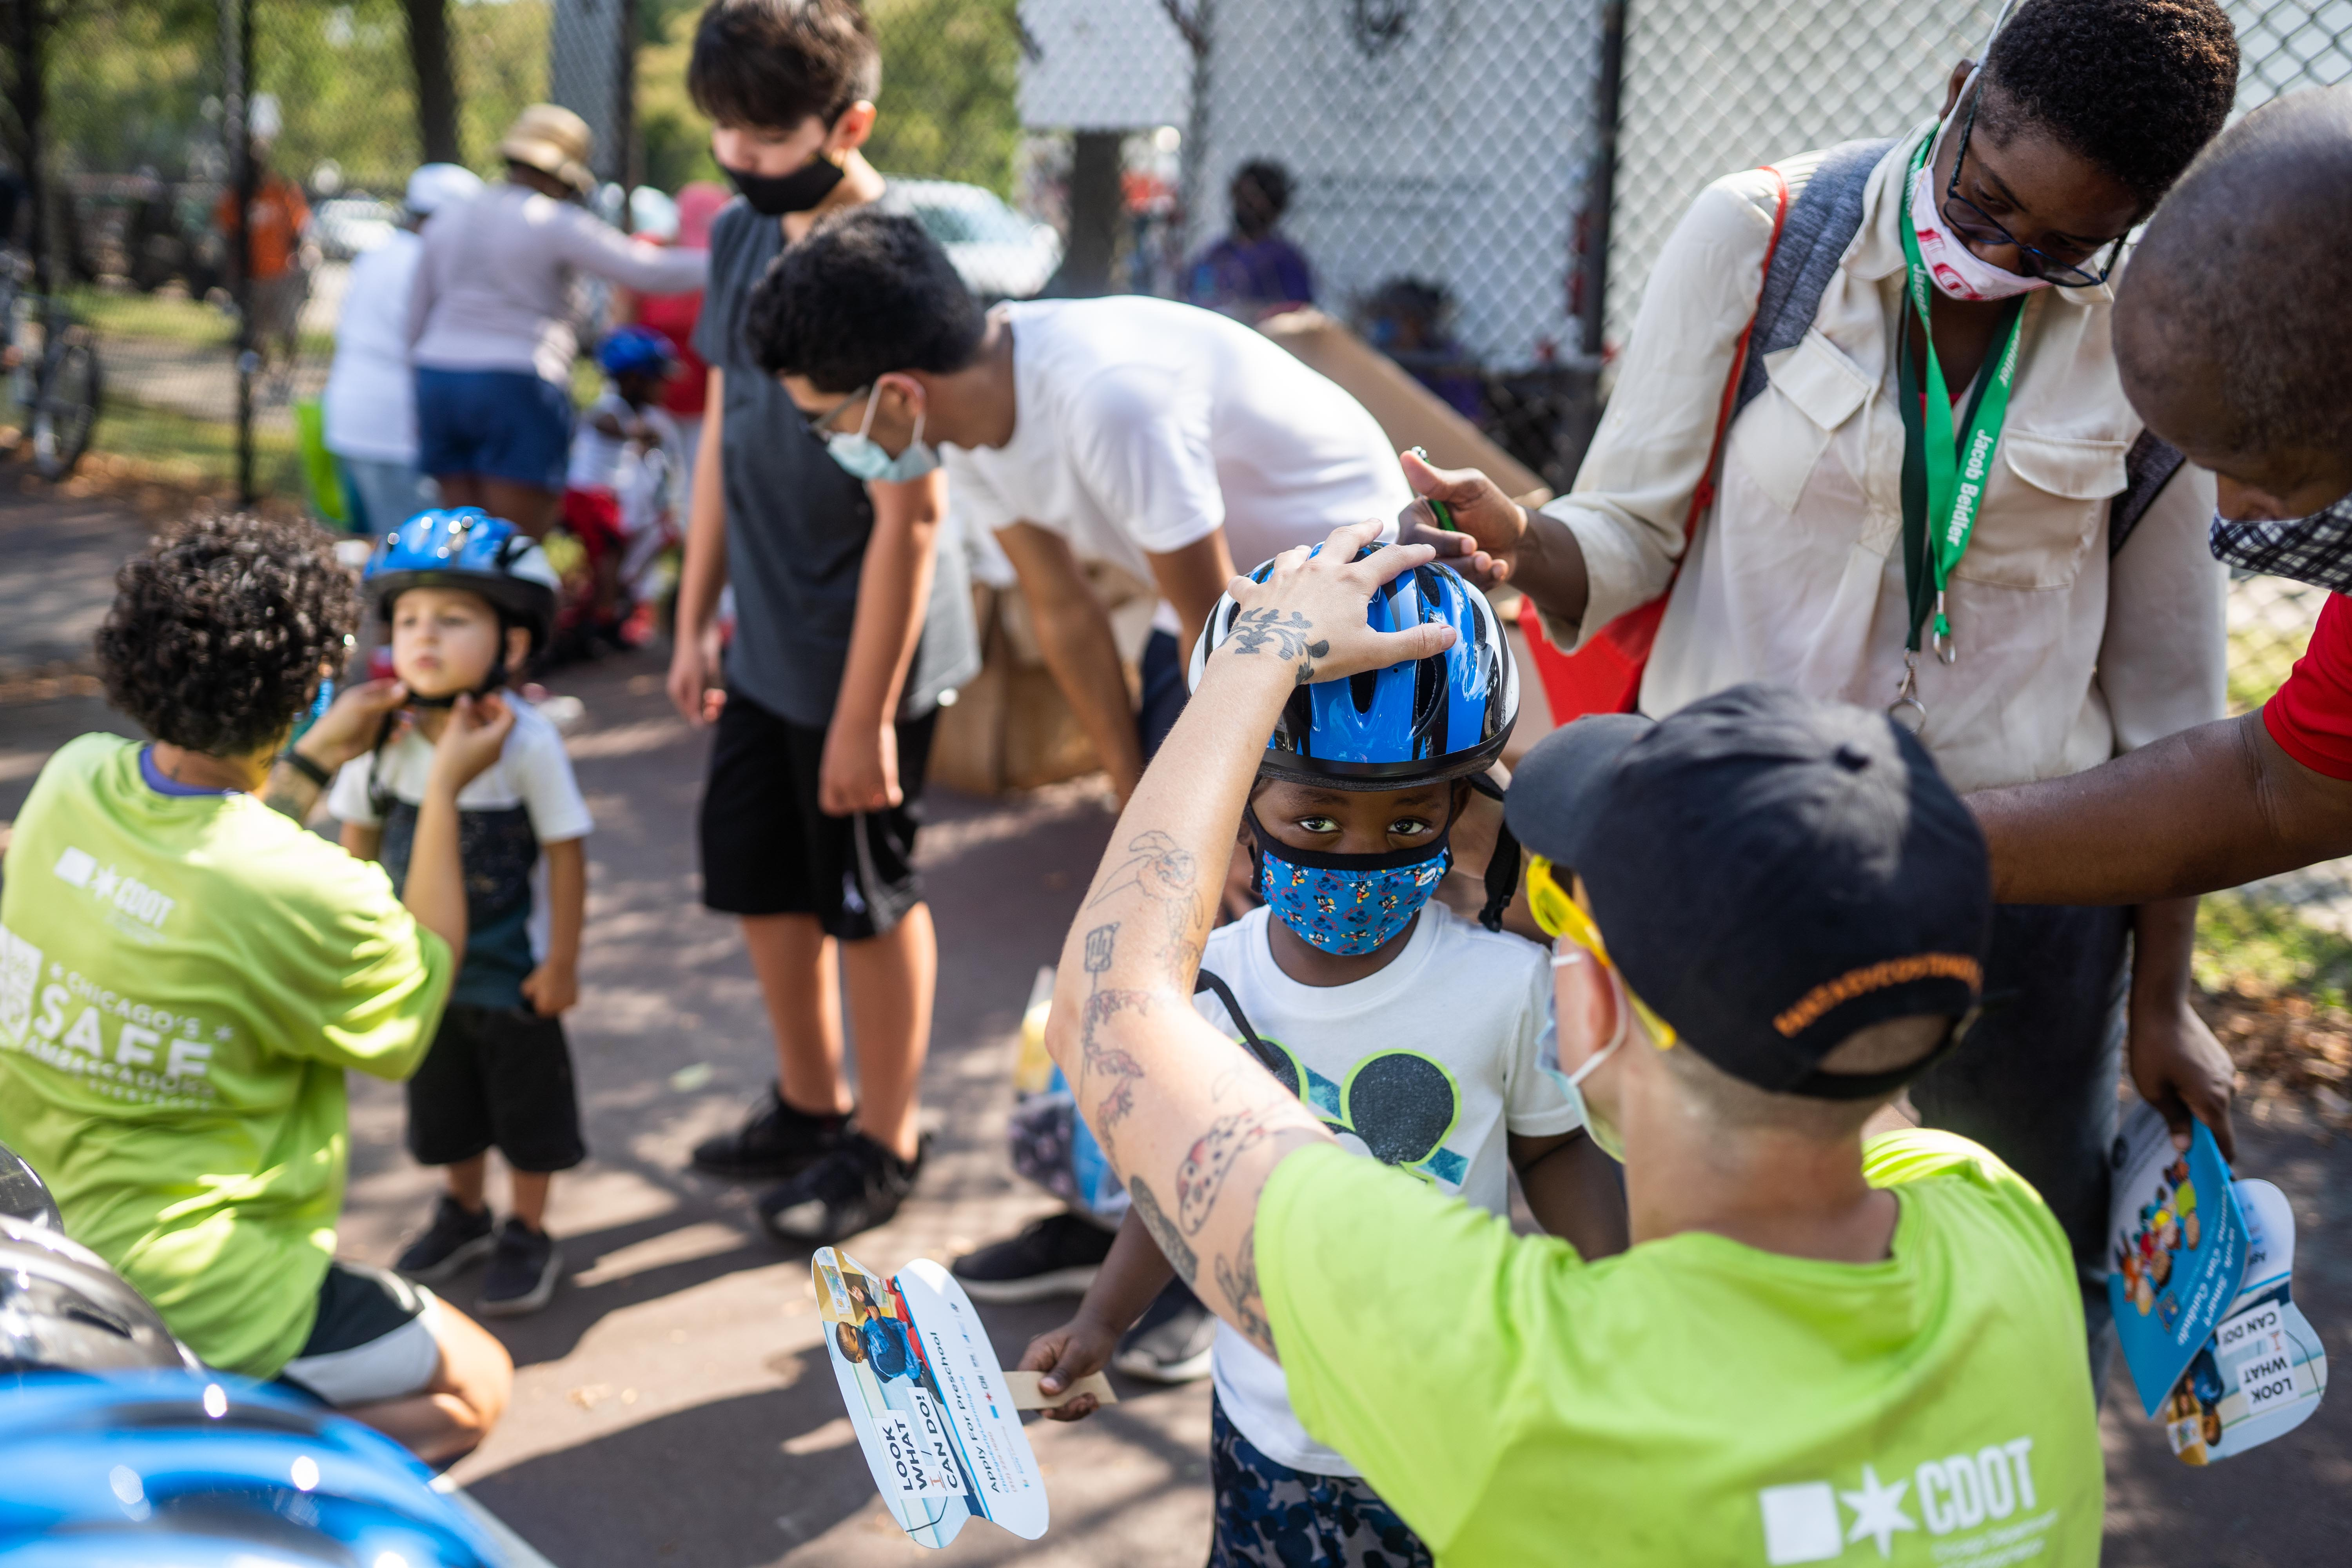 Dylan Jackson gets fitted for a helmet during a bike giveaway and safety camp event at Union Park Saturday morning.